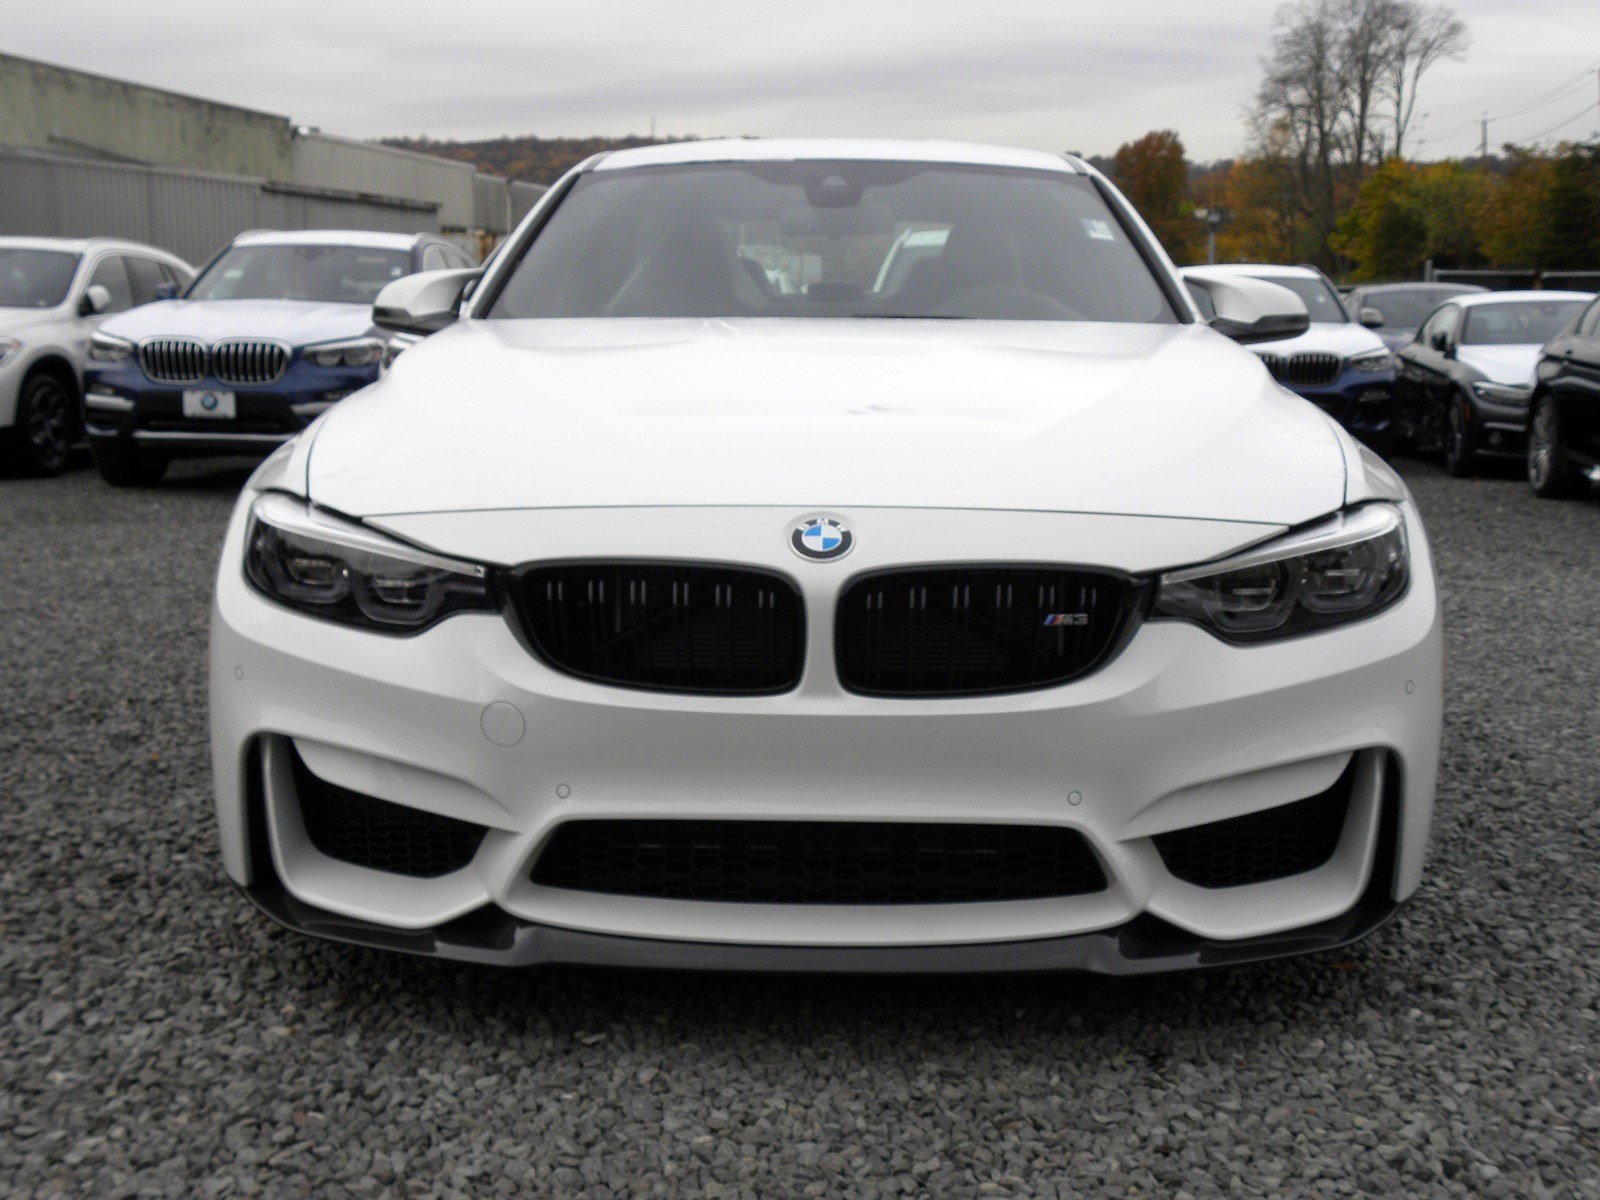 New 2018 BMW M3 CS 4dr Car in Springfield Township DB2761